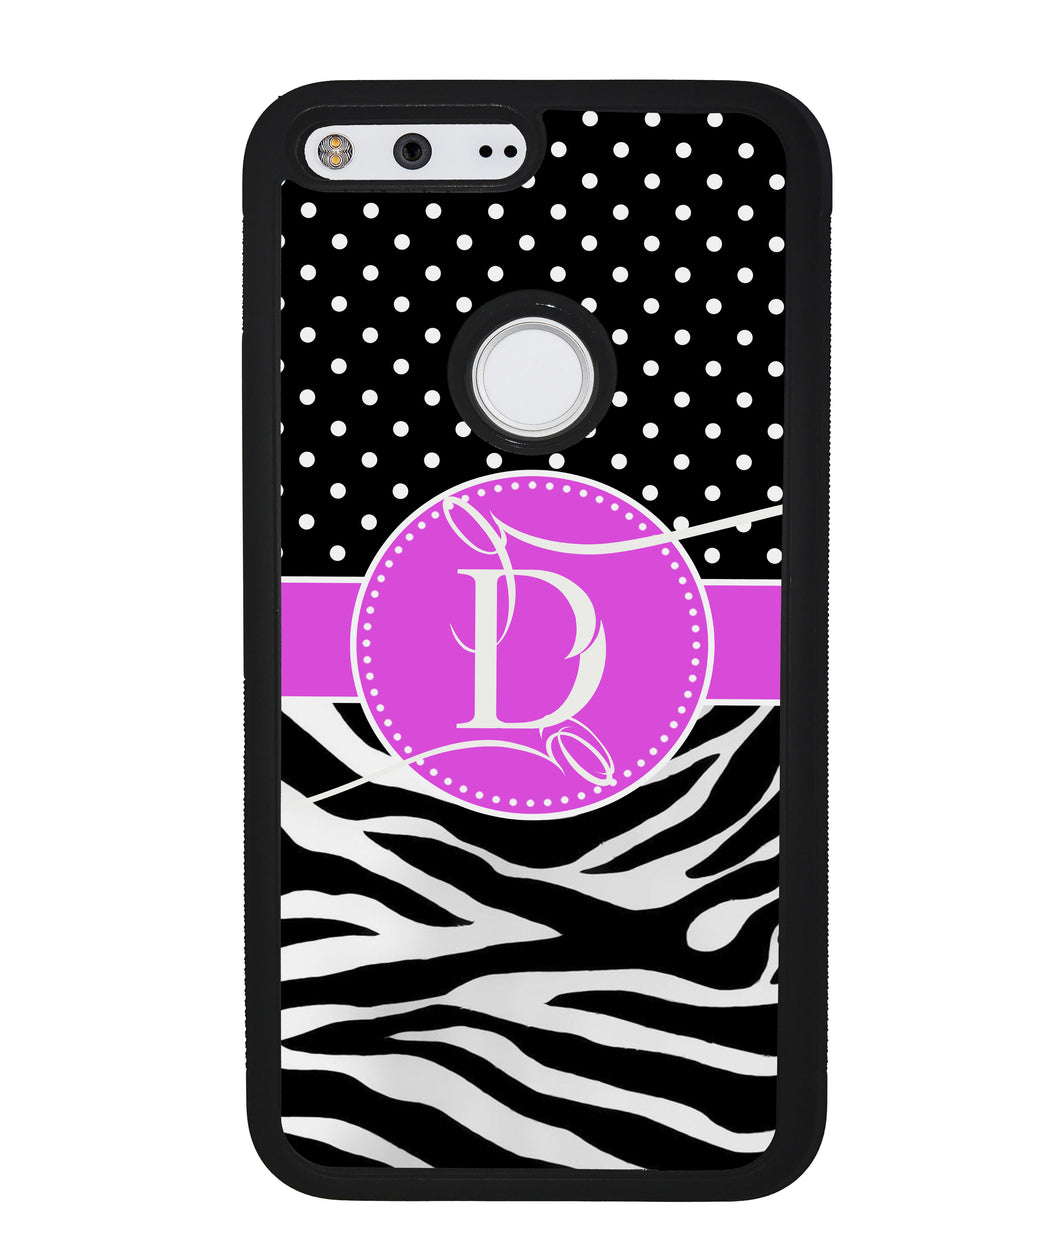 Zebra and Polka Dot Initial | Google Phone Case